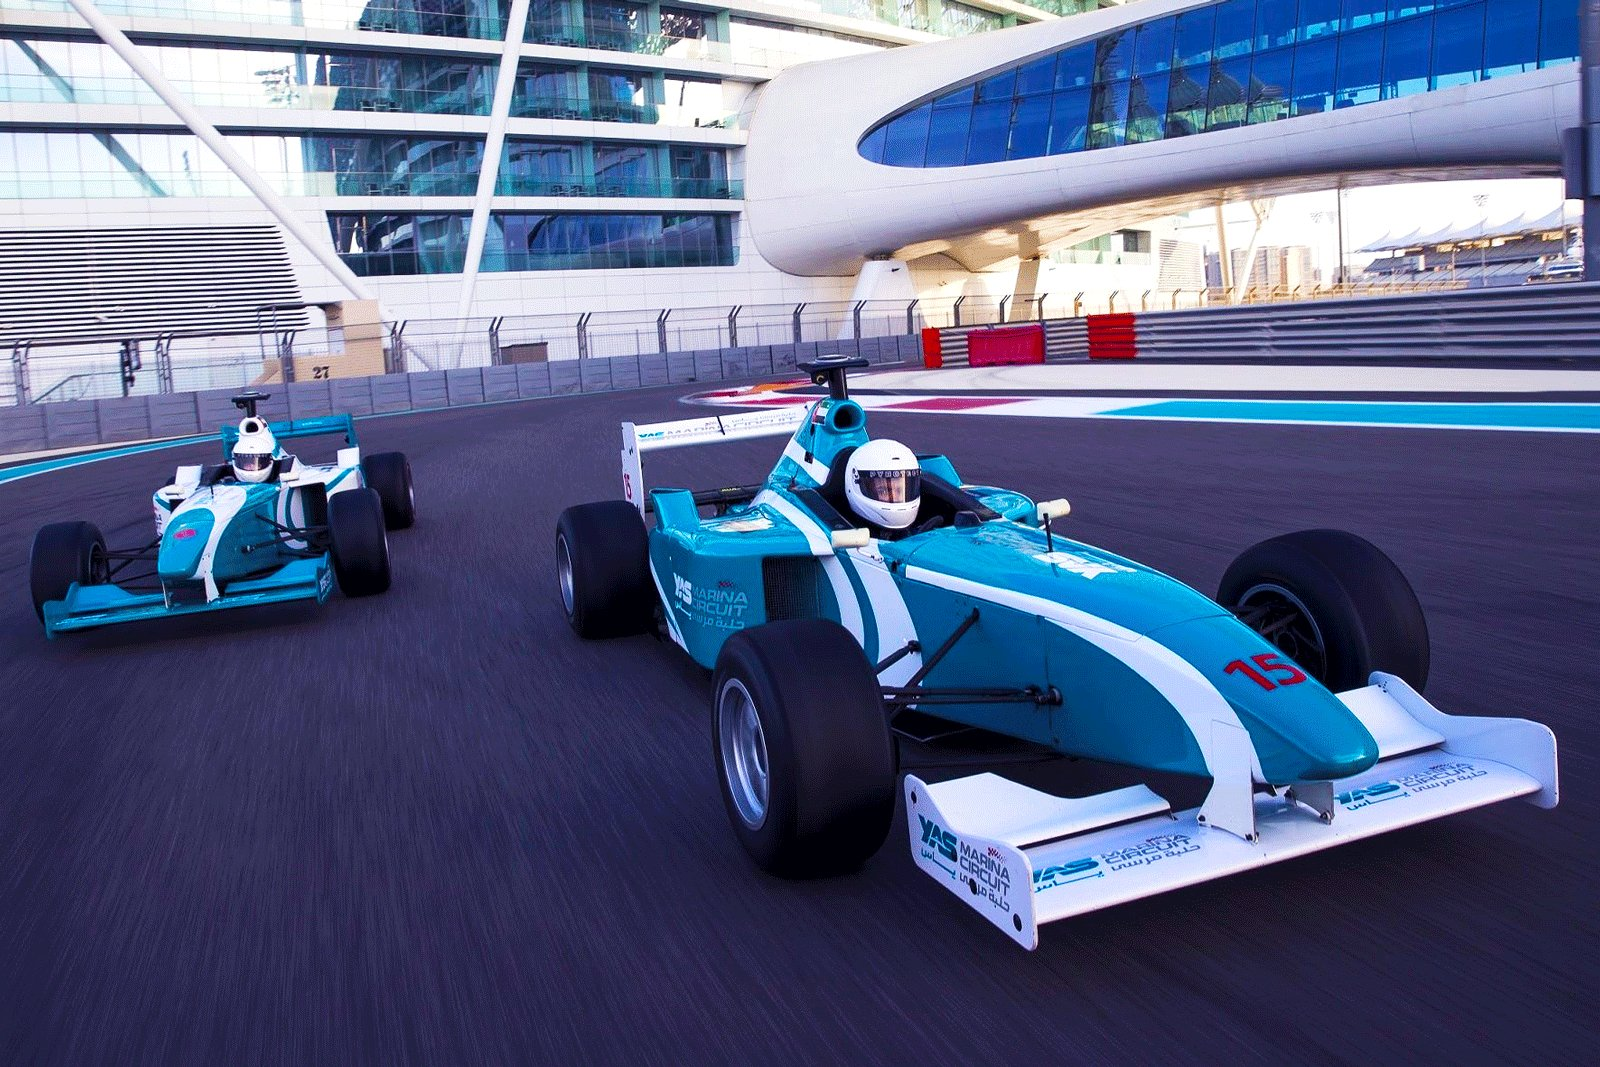 How to drive a race car along the Formula 1 circuit in Abu Dhabi